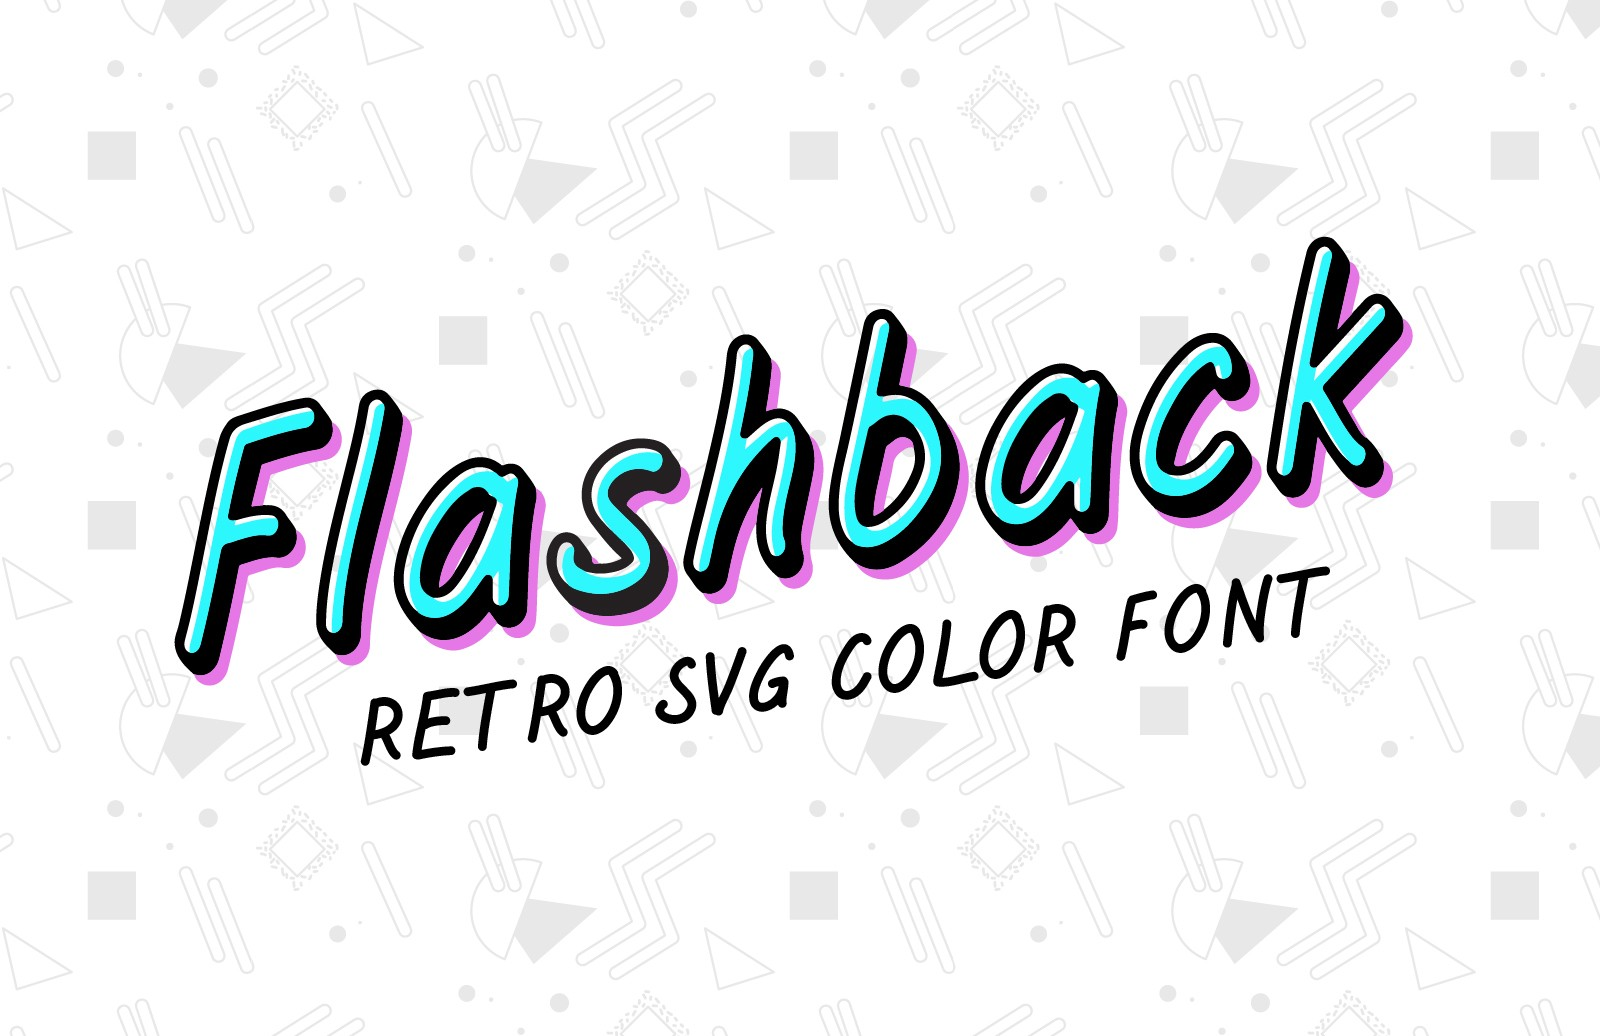 Flashback - Retro SVG Color Font